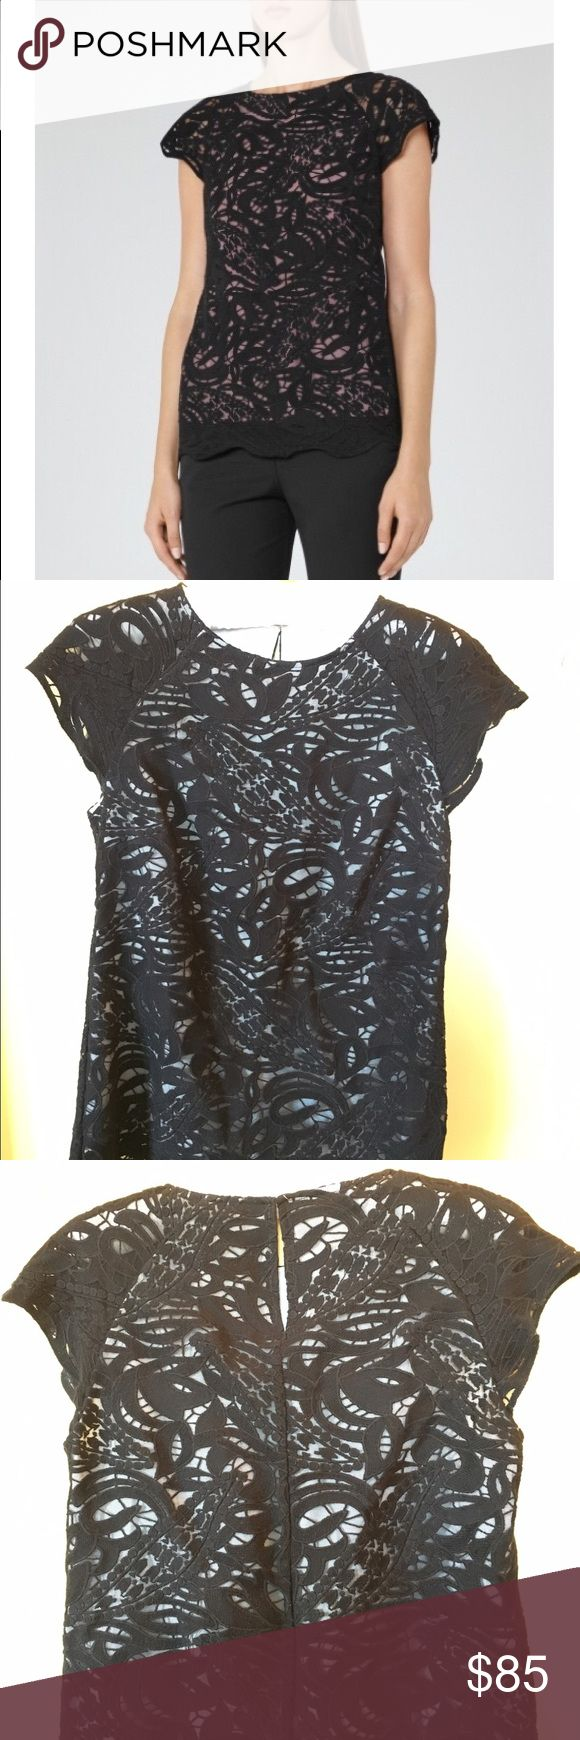 REISS Sol Black Lace Top🦋 This top was purchased from REISS sample sale. Sold as is with no noticeable flaw when worn. Black soft lace overlay with white lining, cap sleeves, round neckline, scallop hemline. Hidden zipper on the side for easy on & off. There is no brand tag sewn & no size/care tag because it was a sample prior to production. Because it's a sample it is not as perfect as what came out in stores,but no obvious imperfection to note on this one! Fits a size 4 in my opinion. Dry…